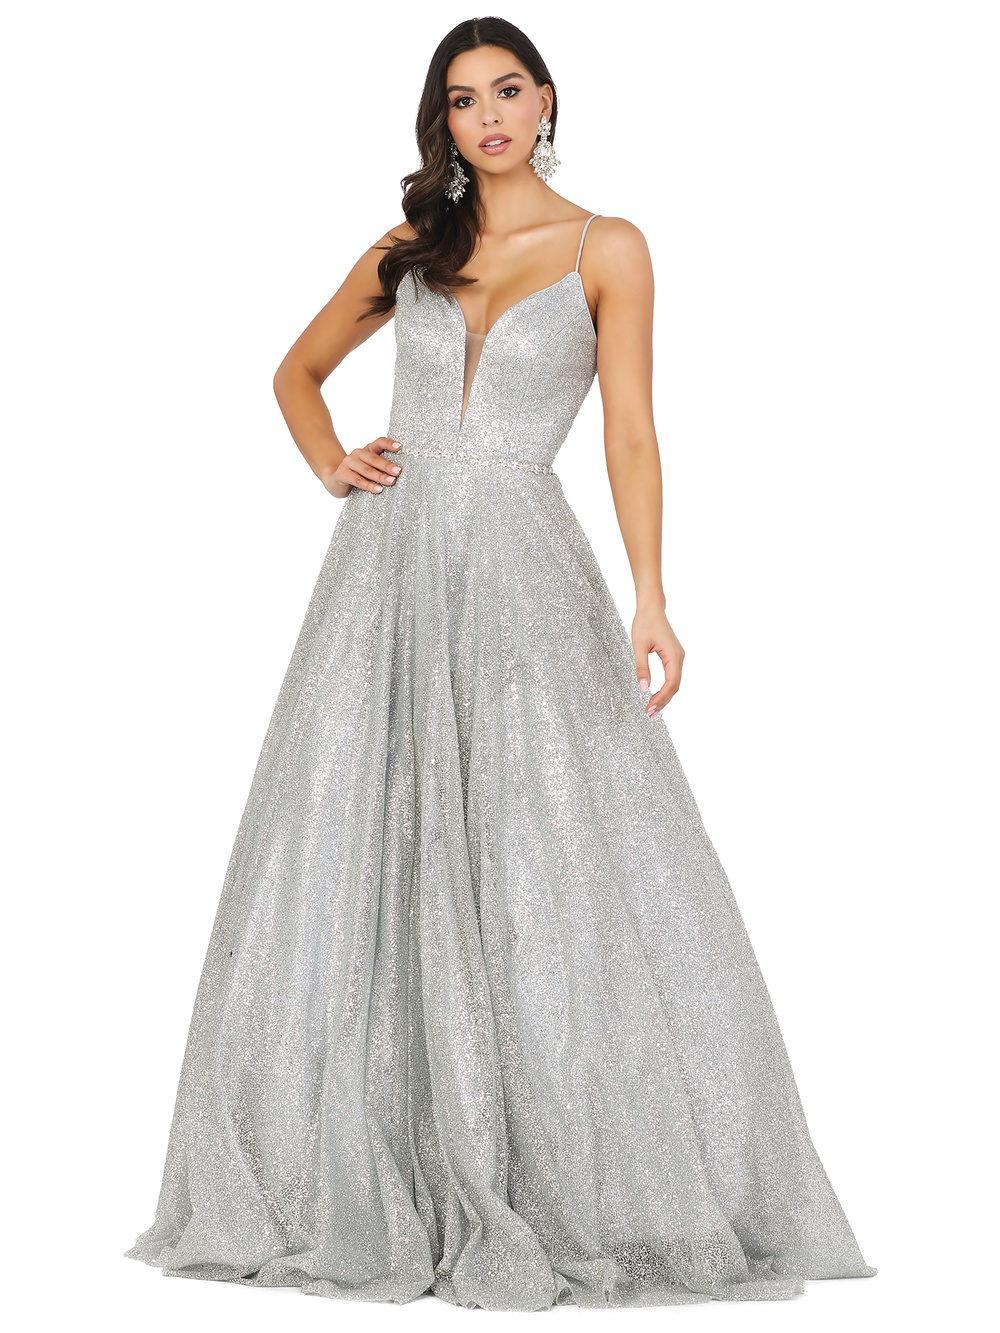 DQ 4086 - Full Sequin Ball Gown with V-Neck Open Spaghetti Strap Corset Beaded Belt & Pockets - Diggz Prom